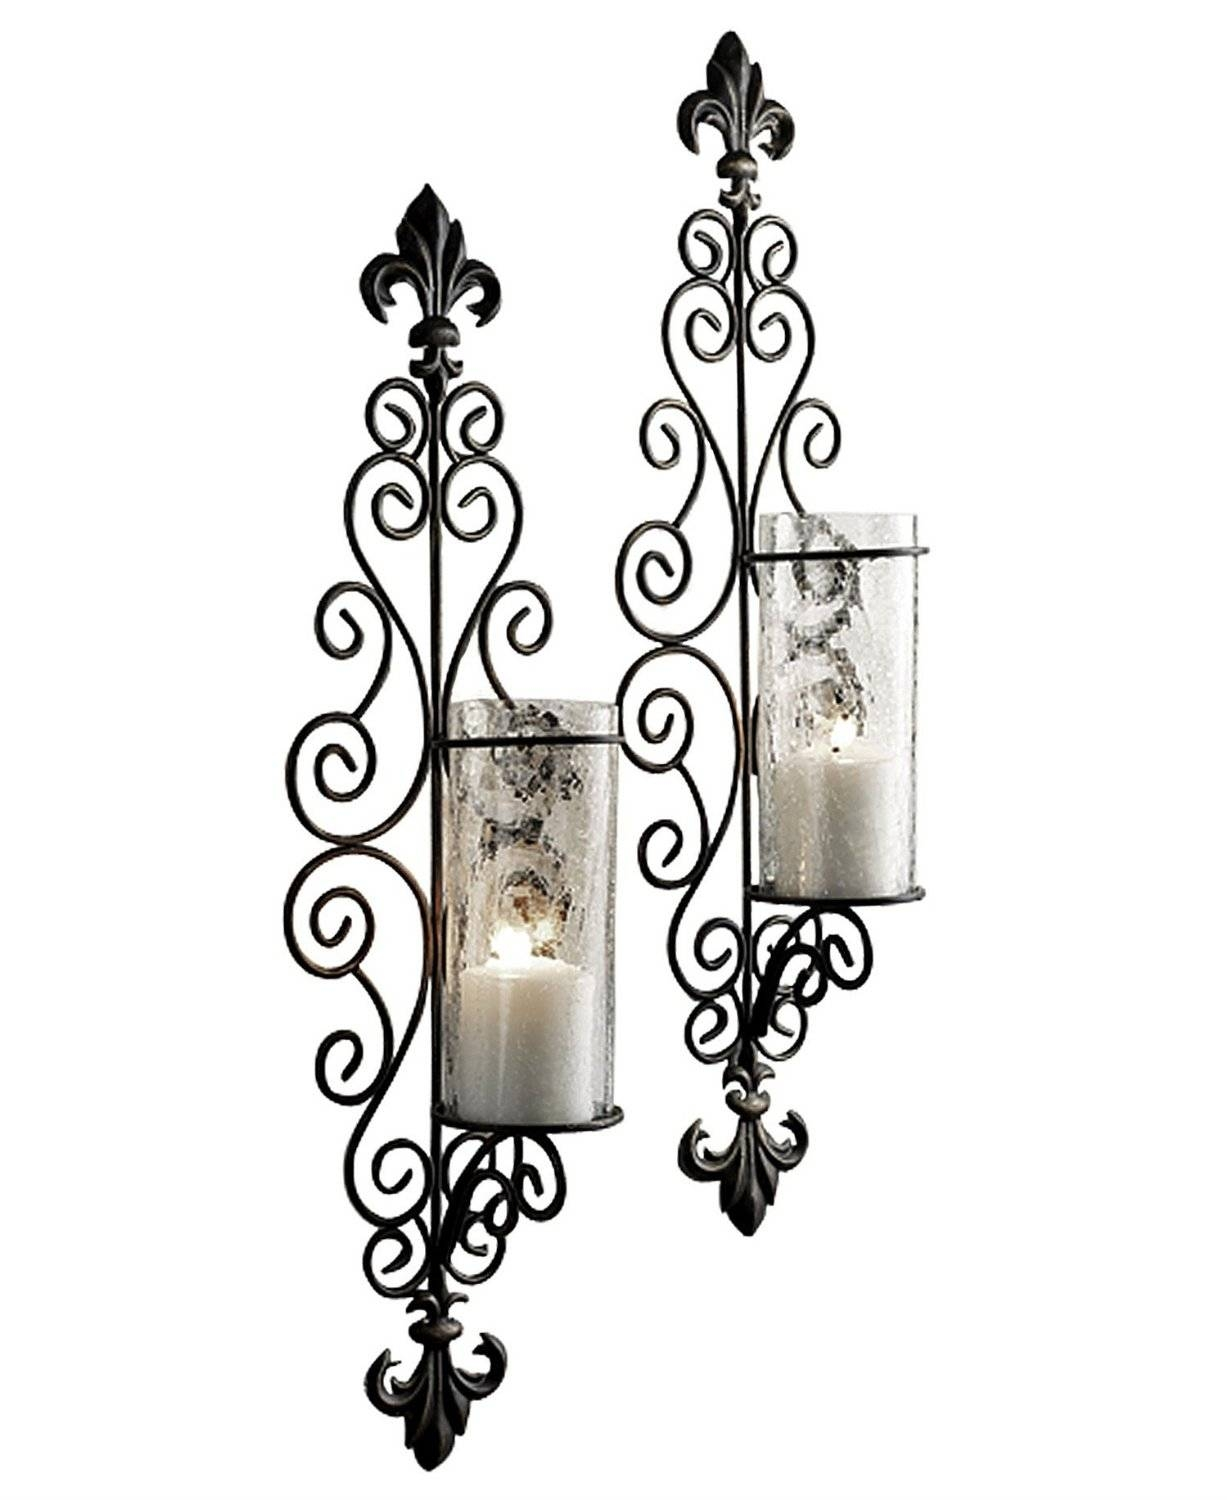 Lamp : Chandelier Candle Holder Wall Candle Holder Mirror Vintage With Regard To Best And Newest Metal Wall Art With Candles (View 8 of 20)